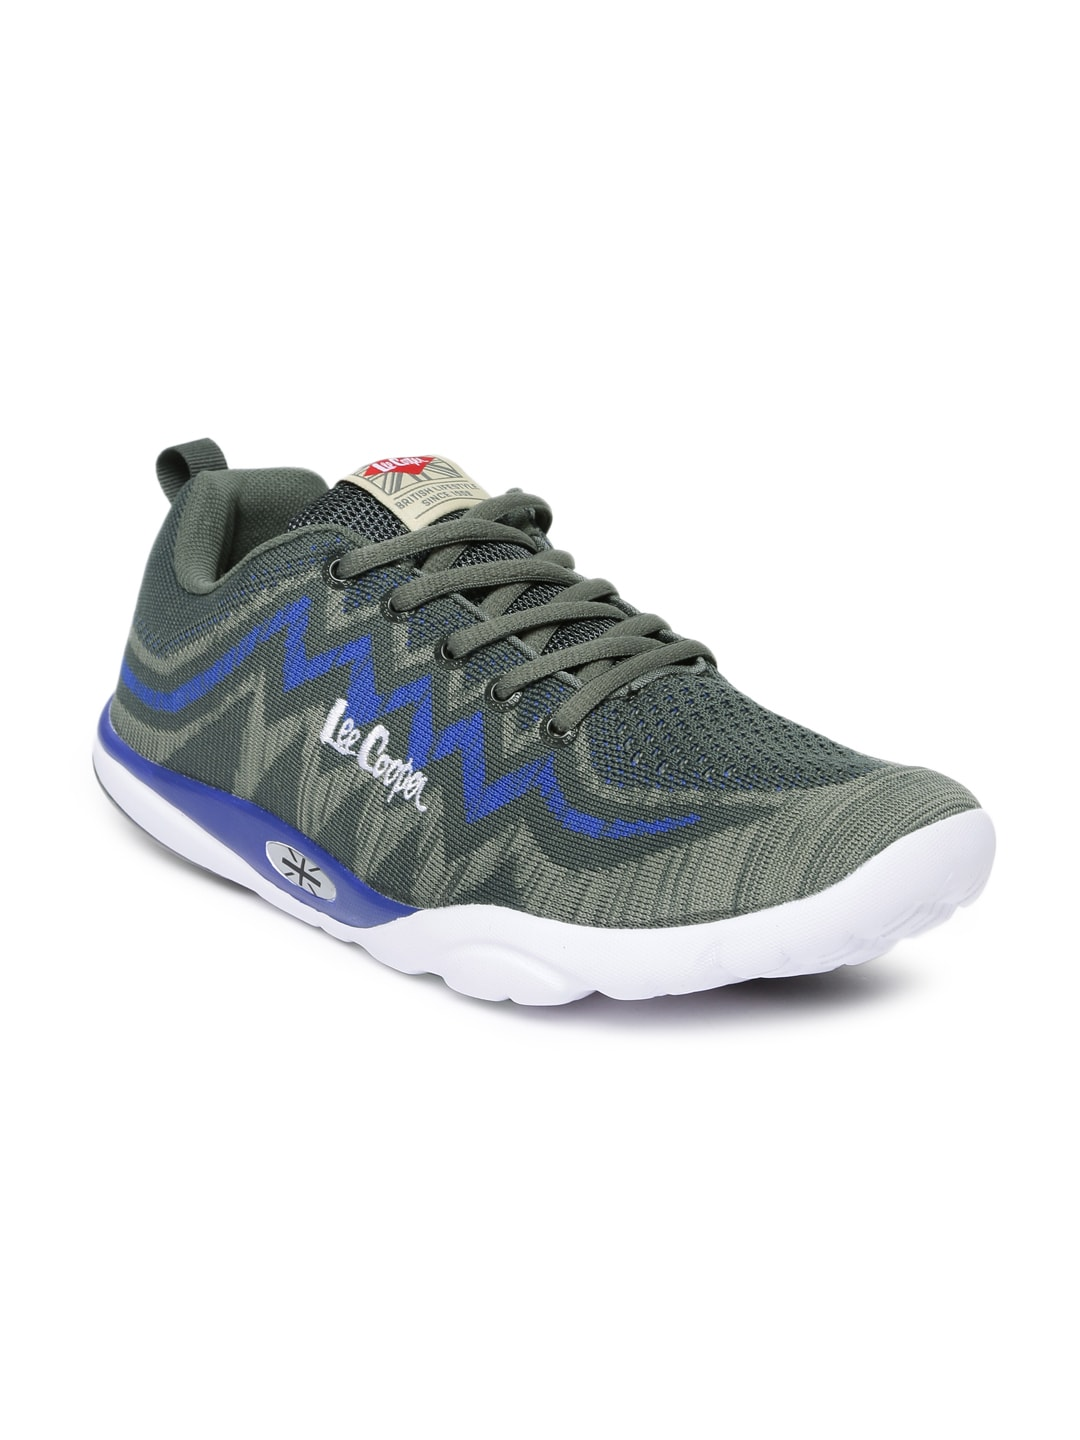 the best attitude c6caf ec4b6 Footwear Online - Shop for Men, Women  Kids Footwear  Myntra